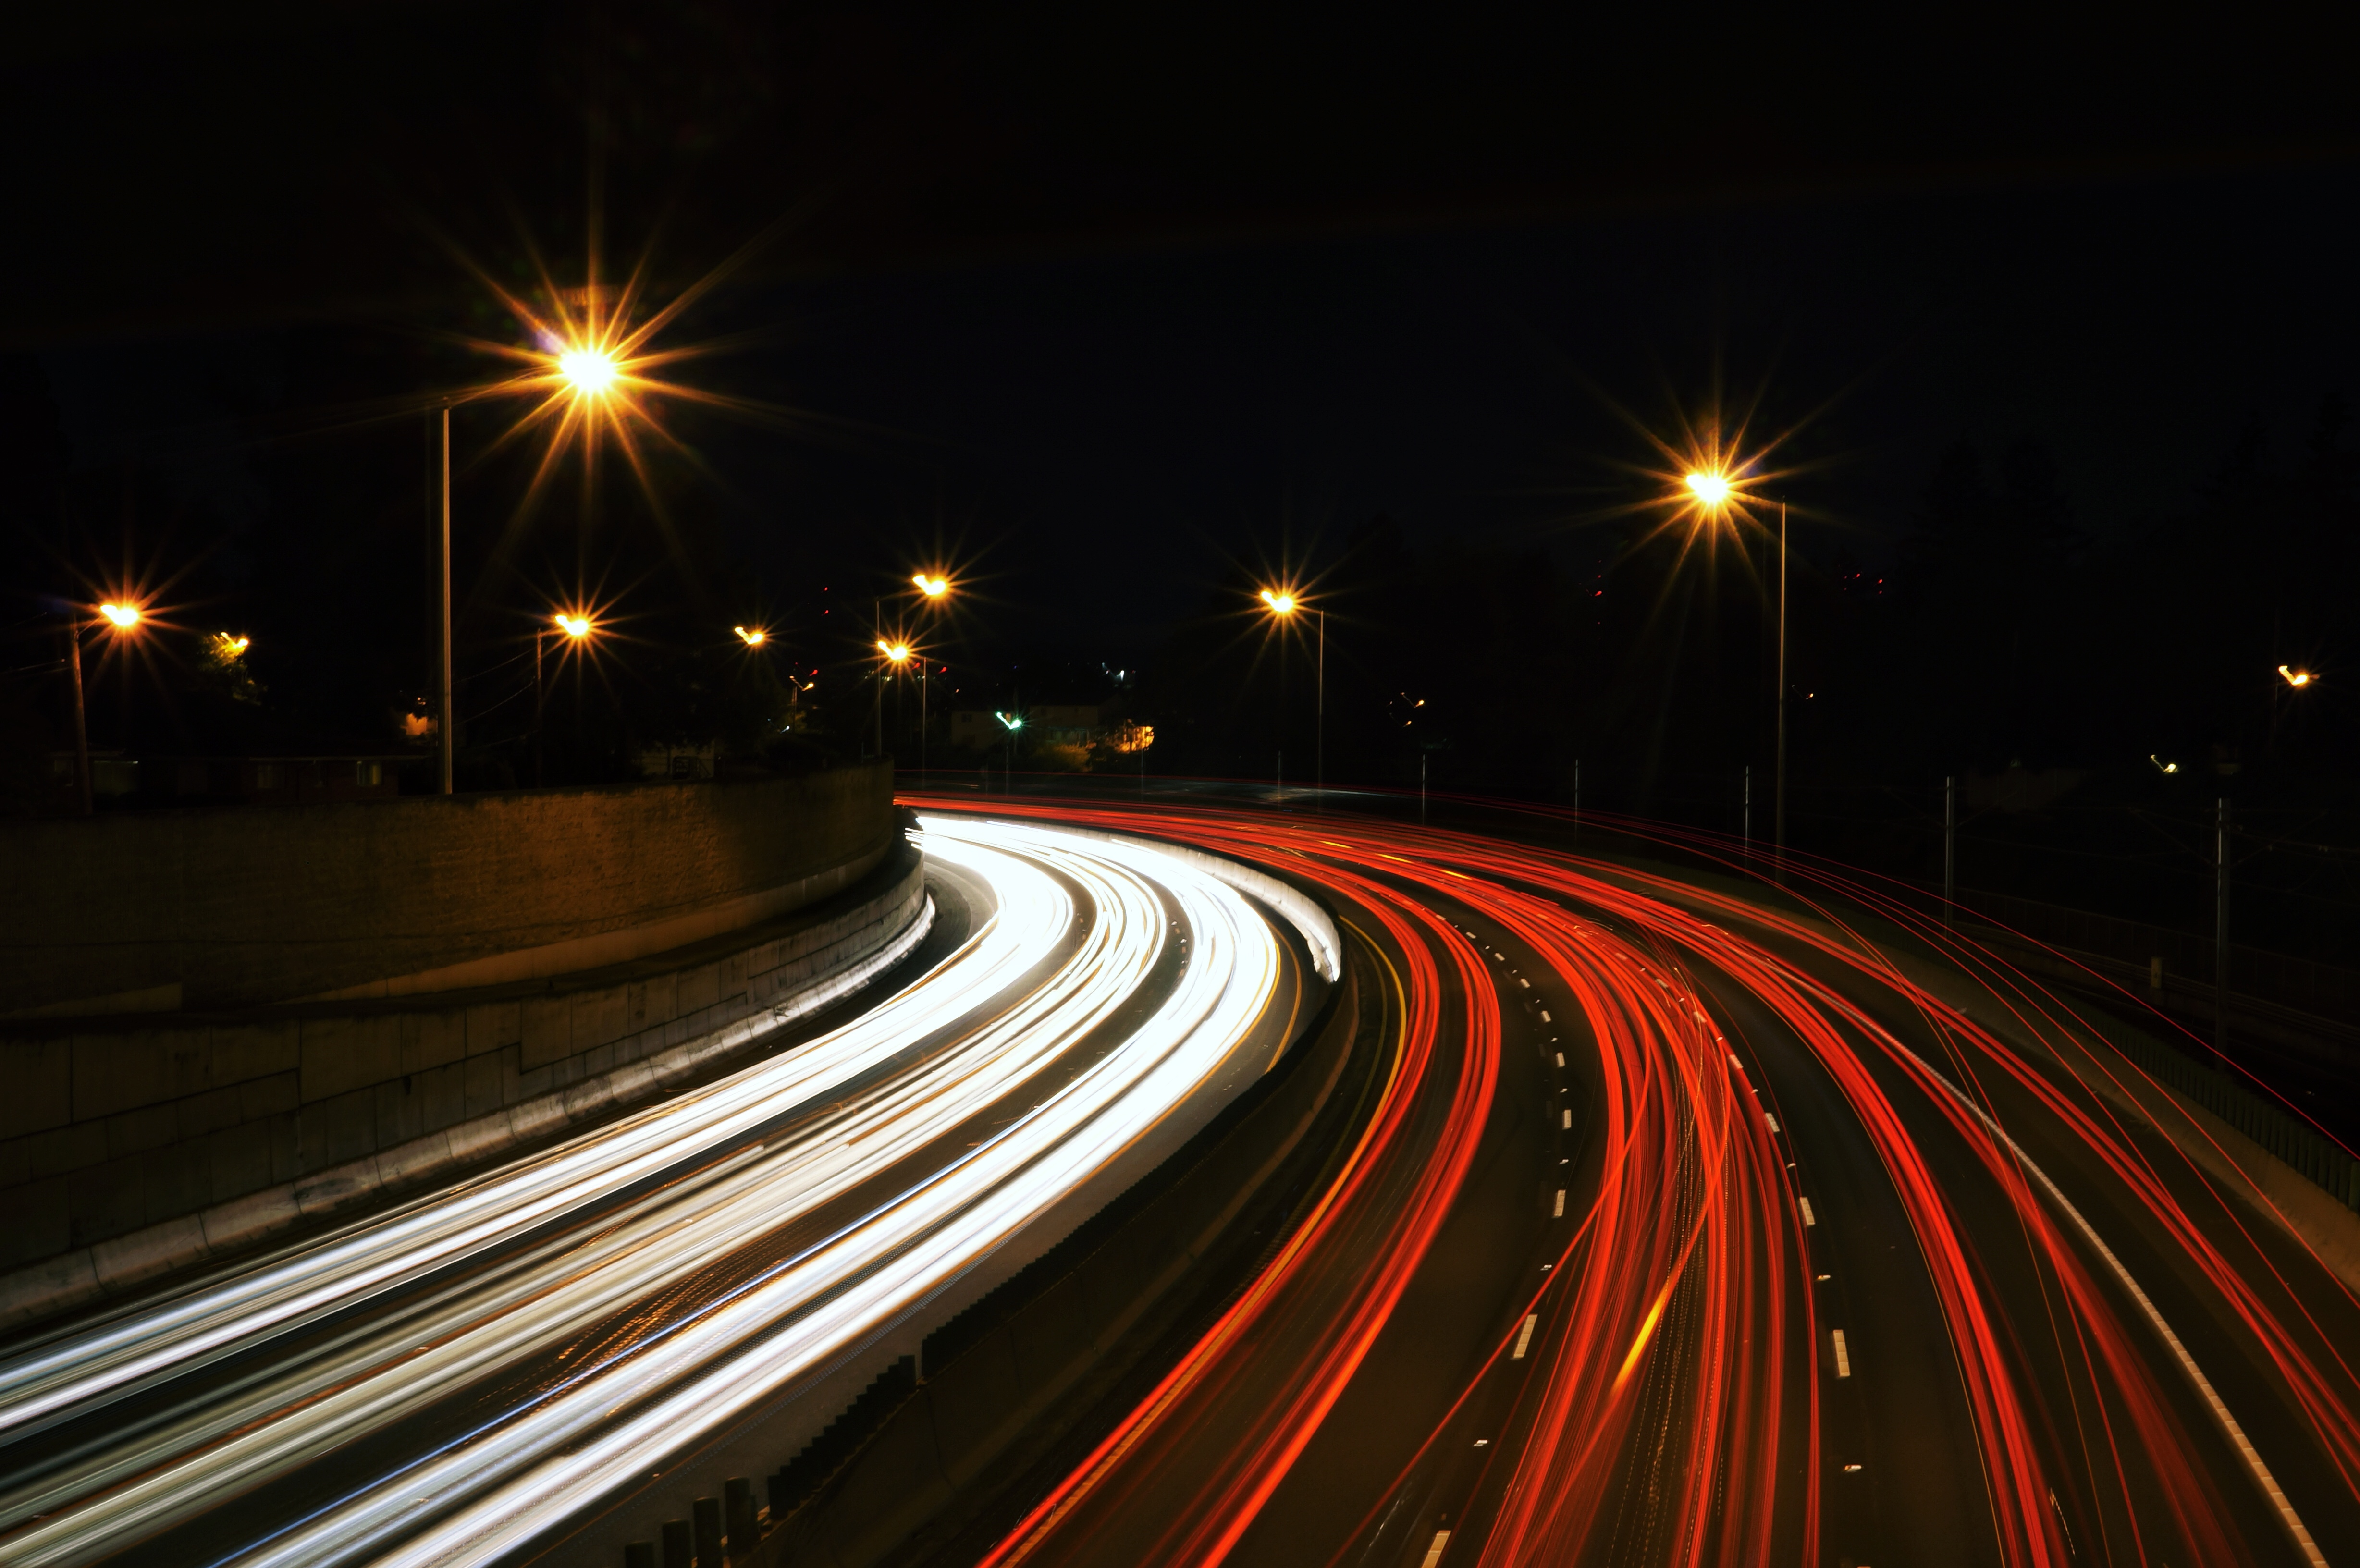 Contact Your Elected Official to Fight Against Blue-Rich LED Street Lighting Image